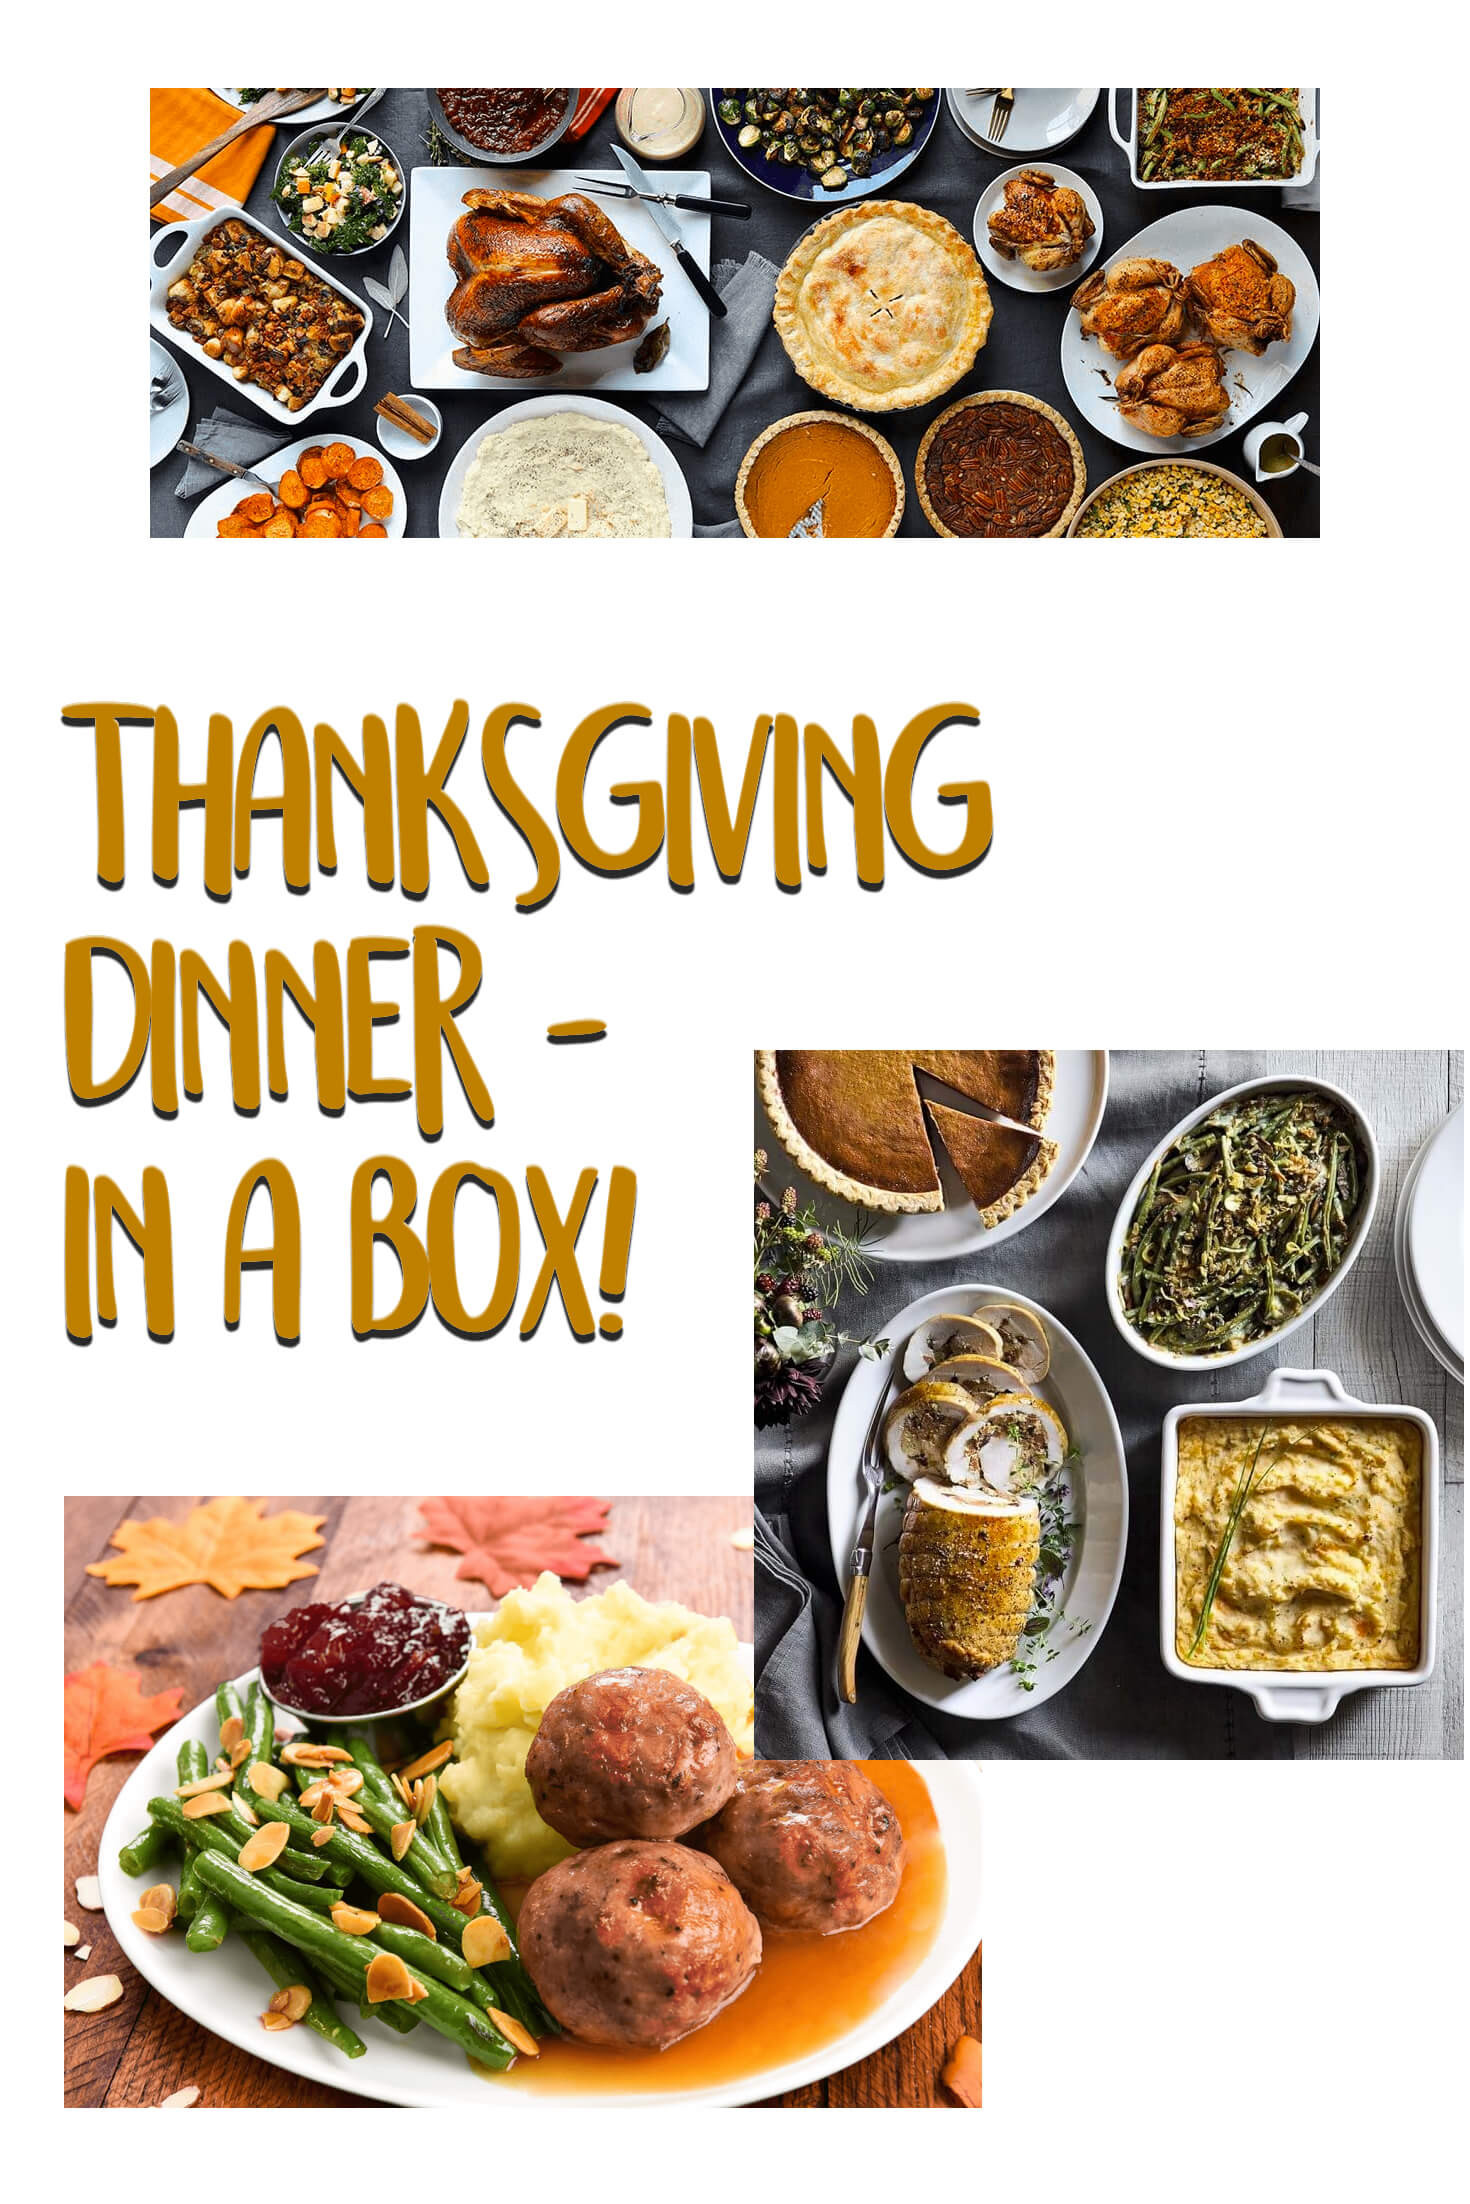 Mail Order Thanksgiving Dinners  Thanksgiving Dinner In A Box hello subscription